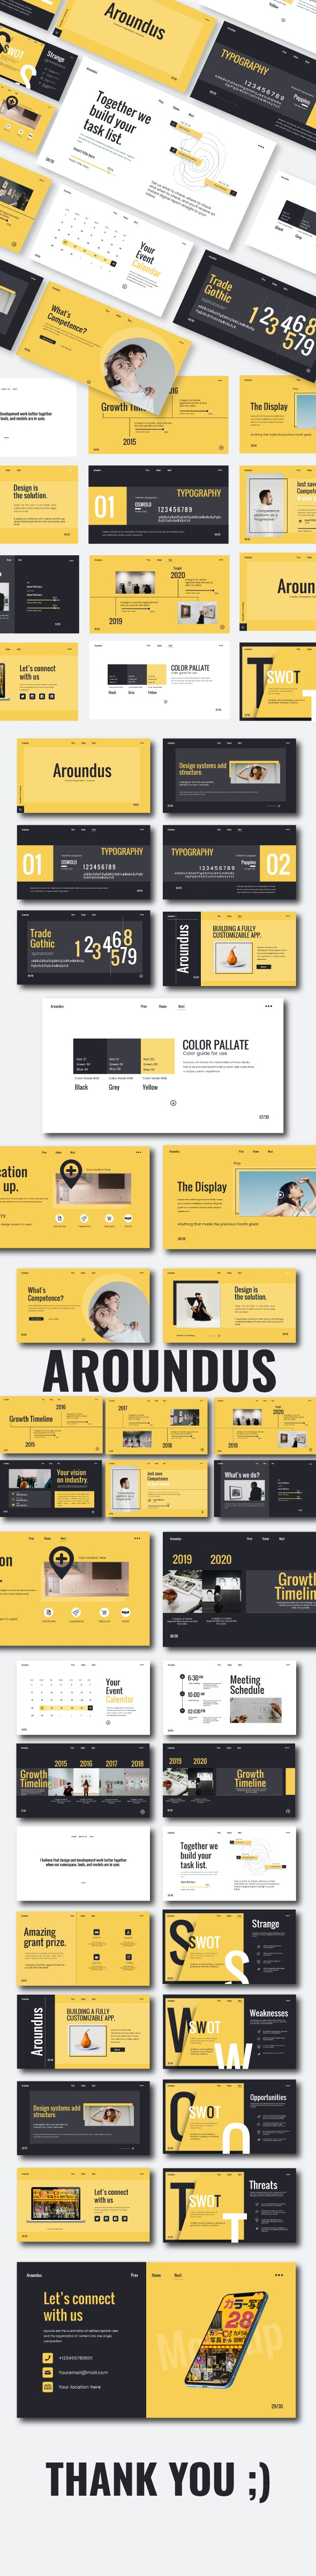 5 Best Presentation & Powerpoint Templates  for November 2019